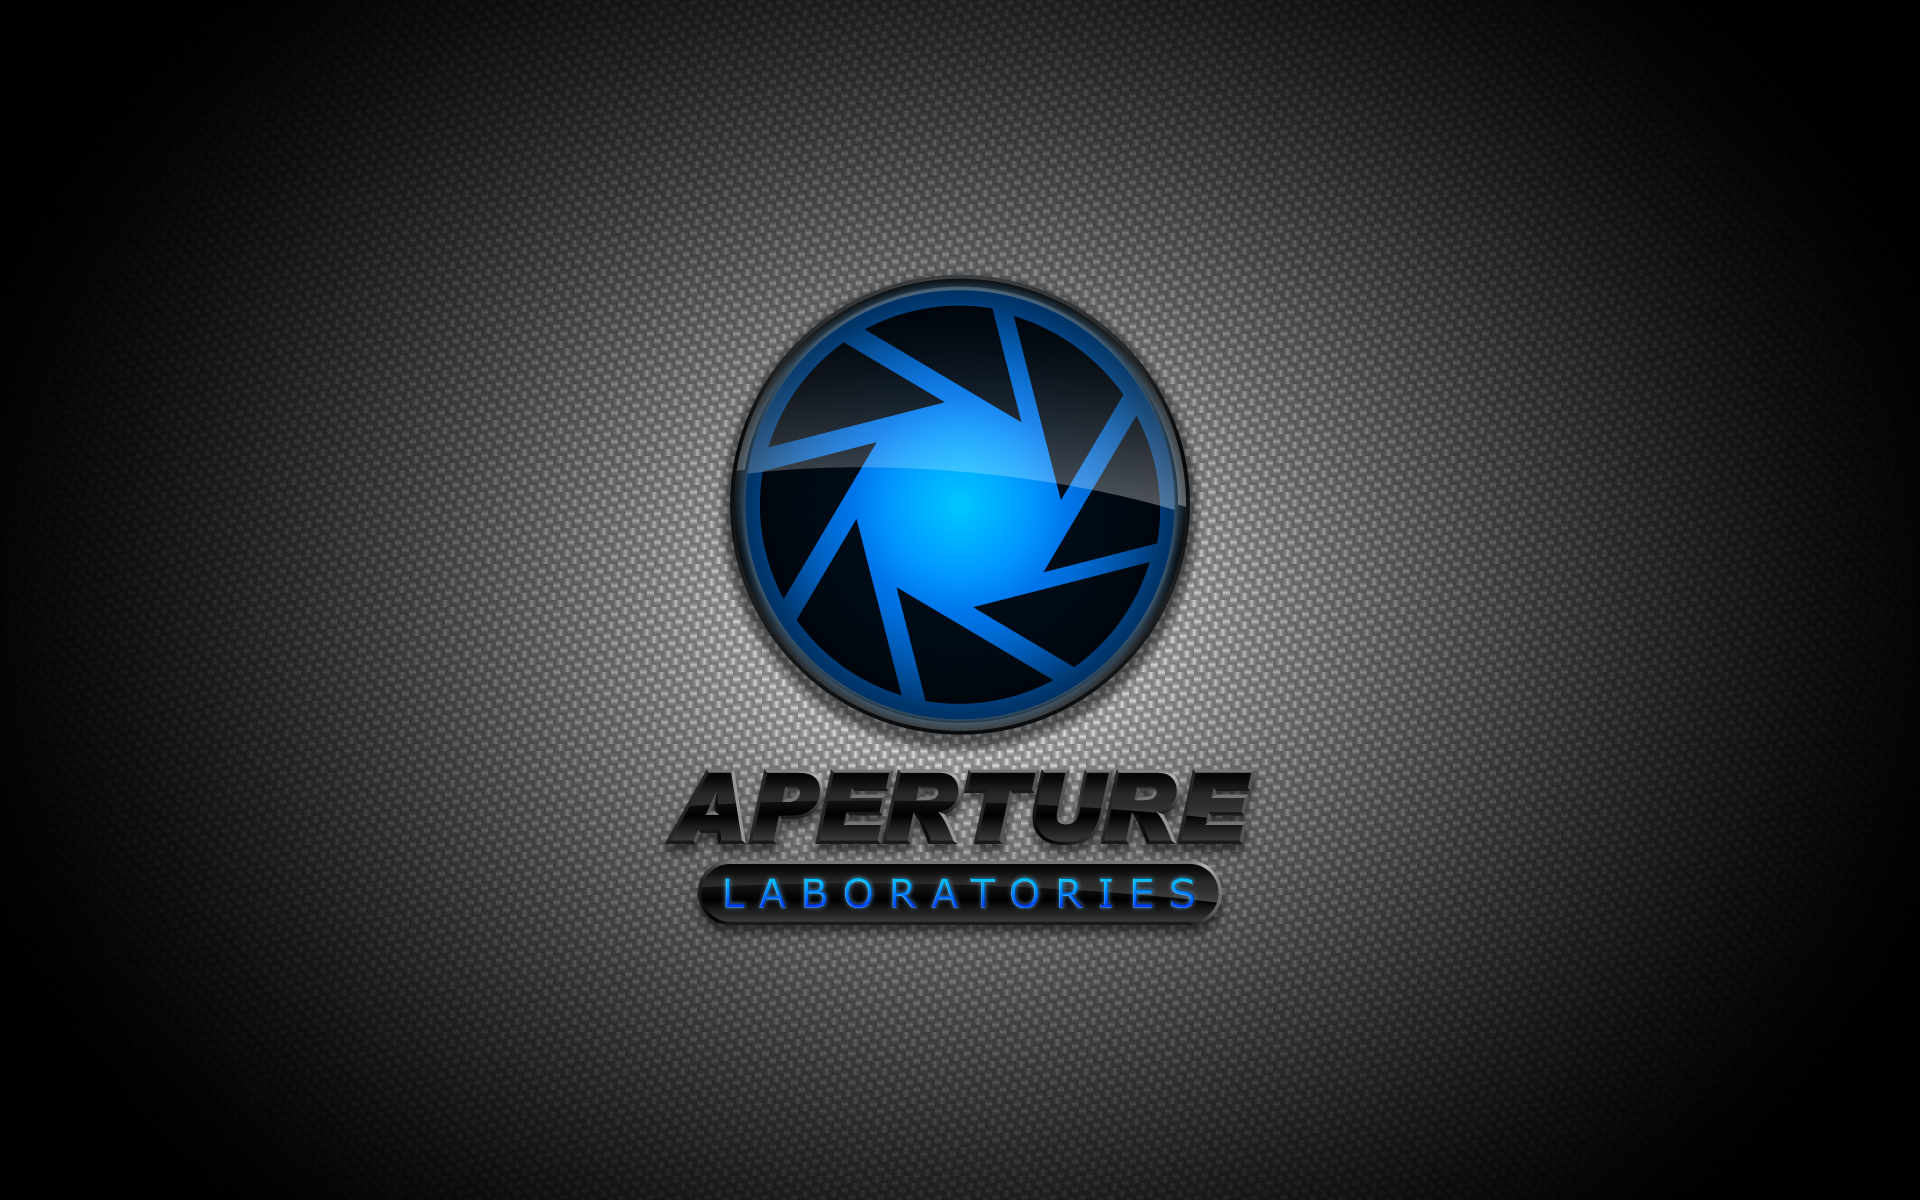 10 aperture science hd wallpapers   background images - wallpaper abyss